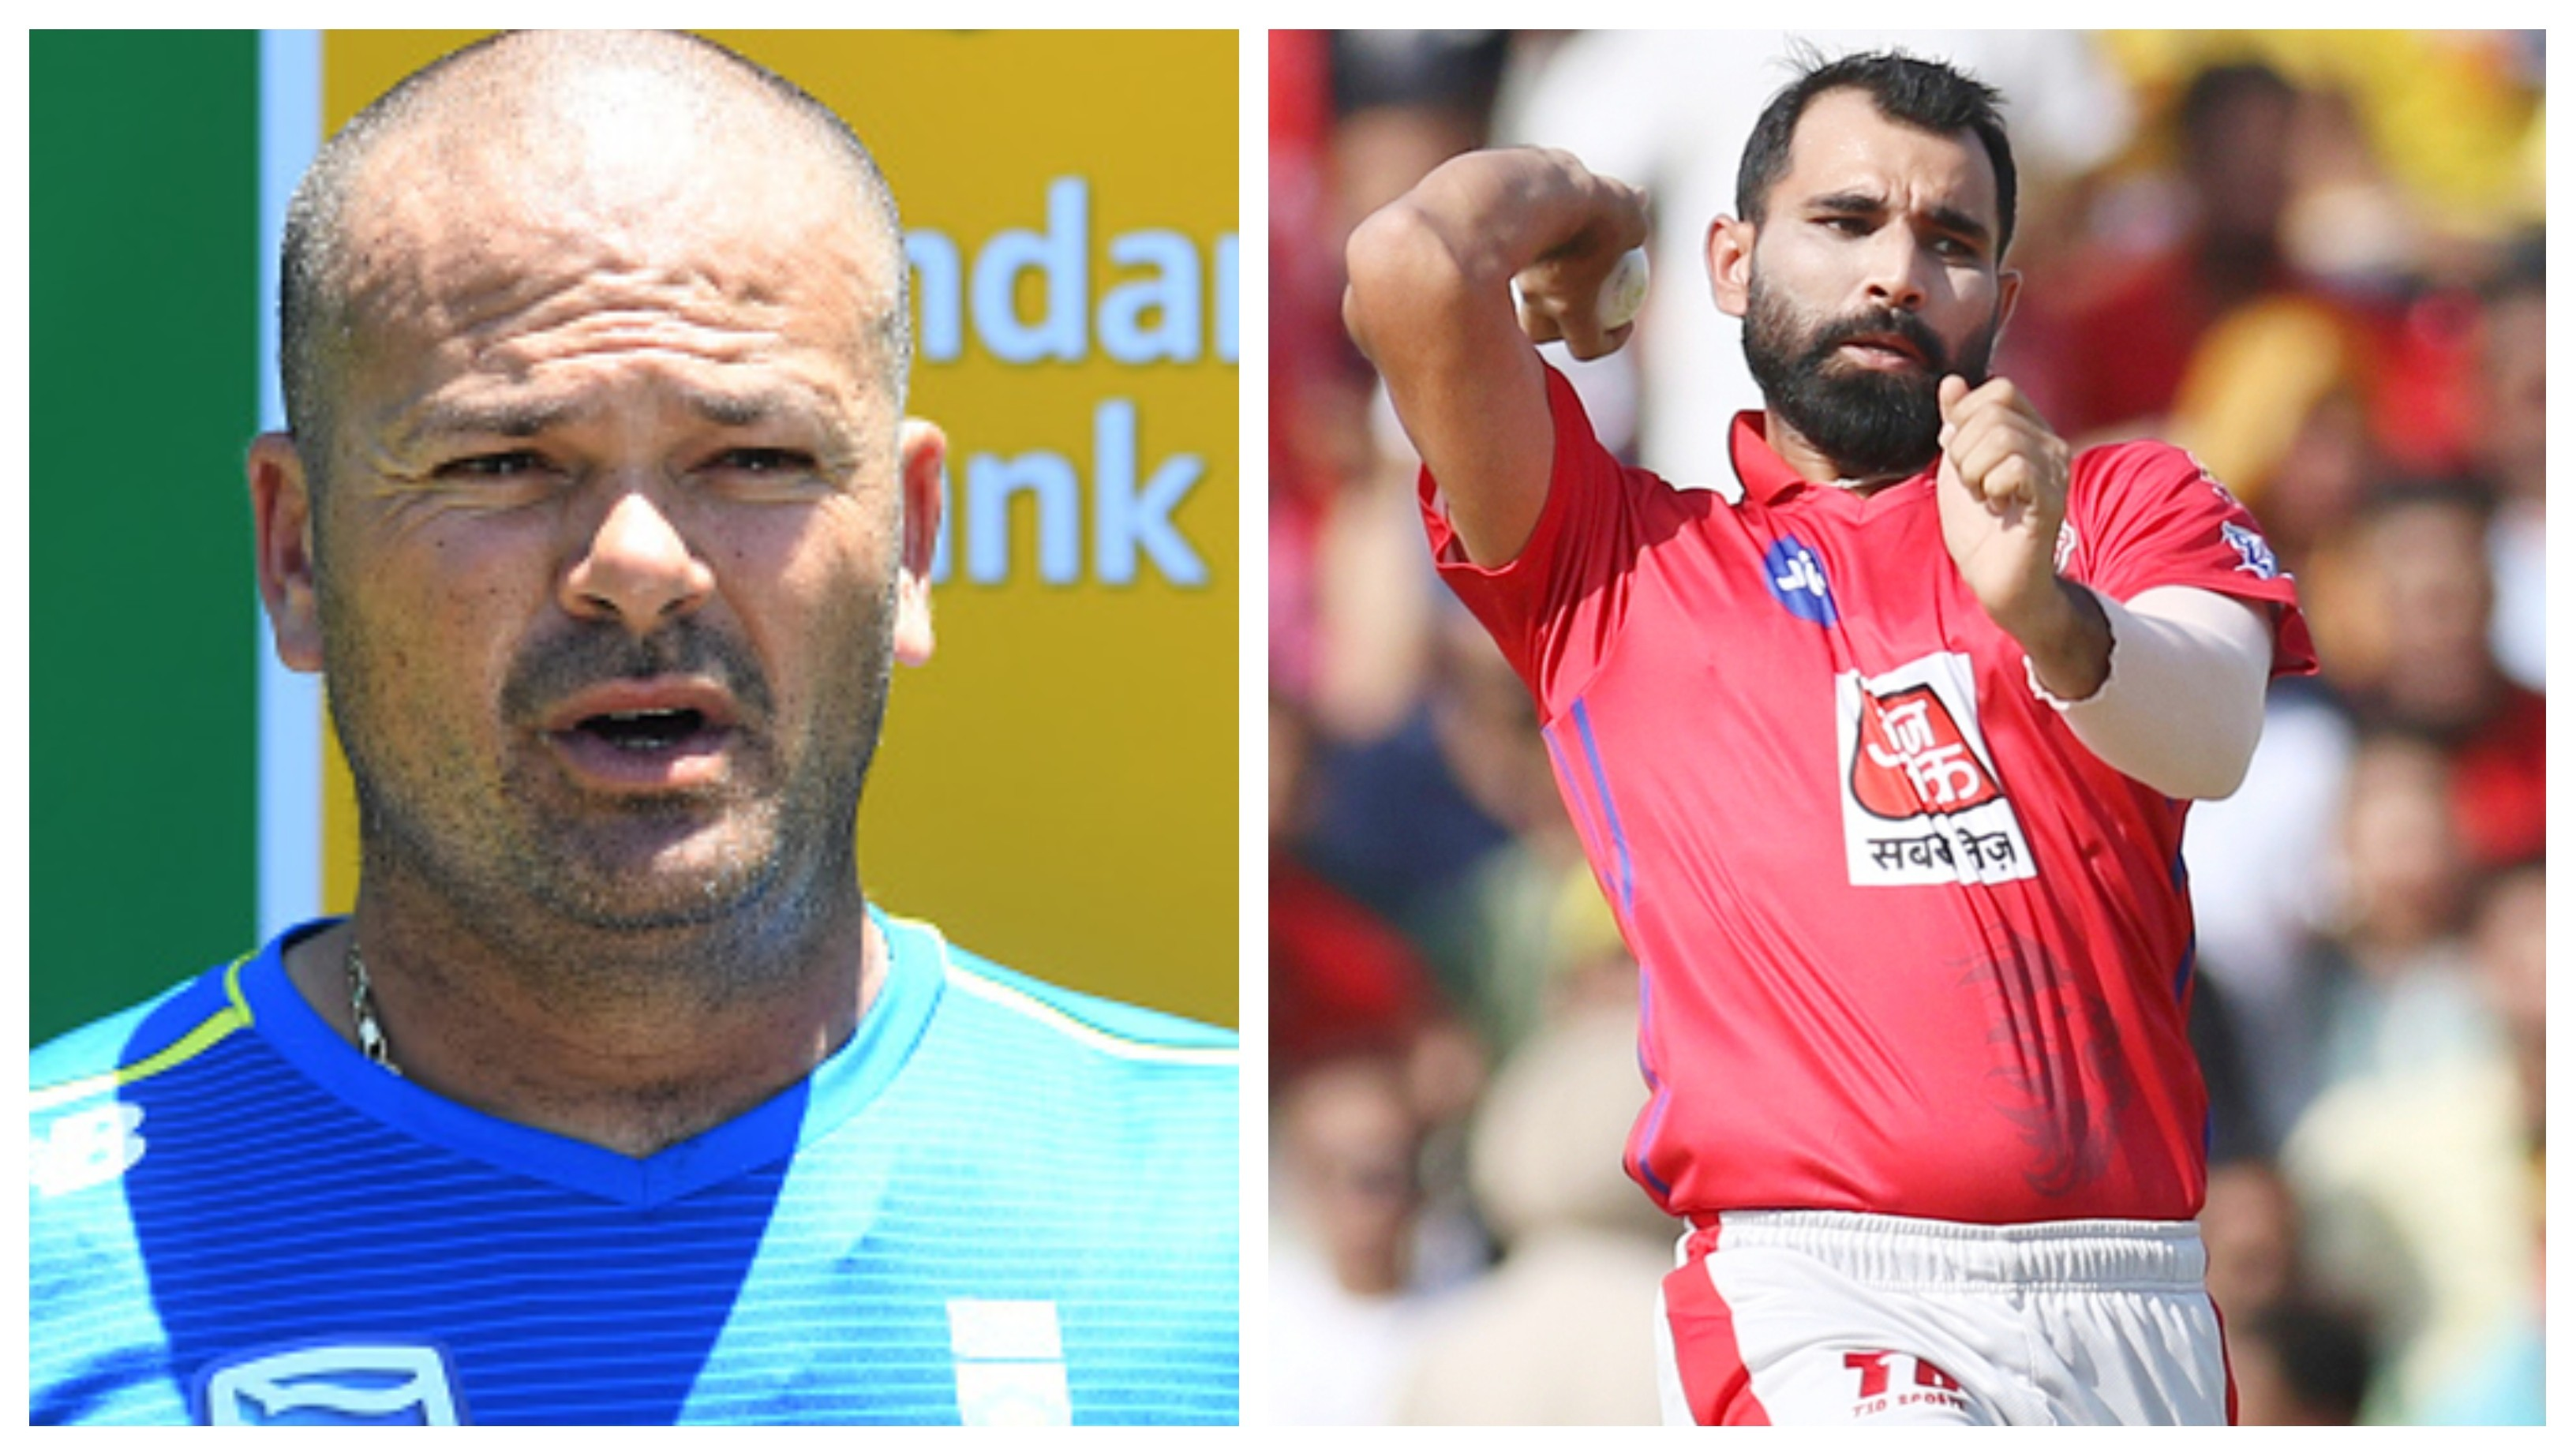 IPL 2020: Mohammad Shami's exemplary work-ethic reason for his success, says Charl Langeveldt